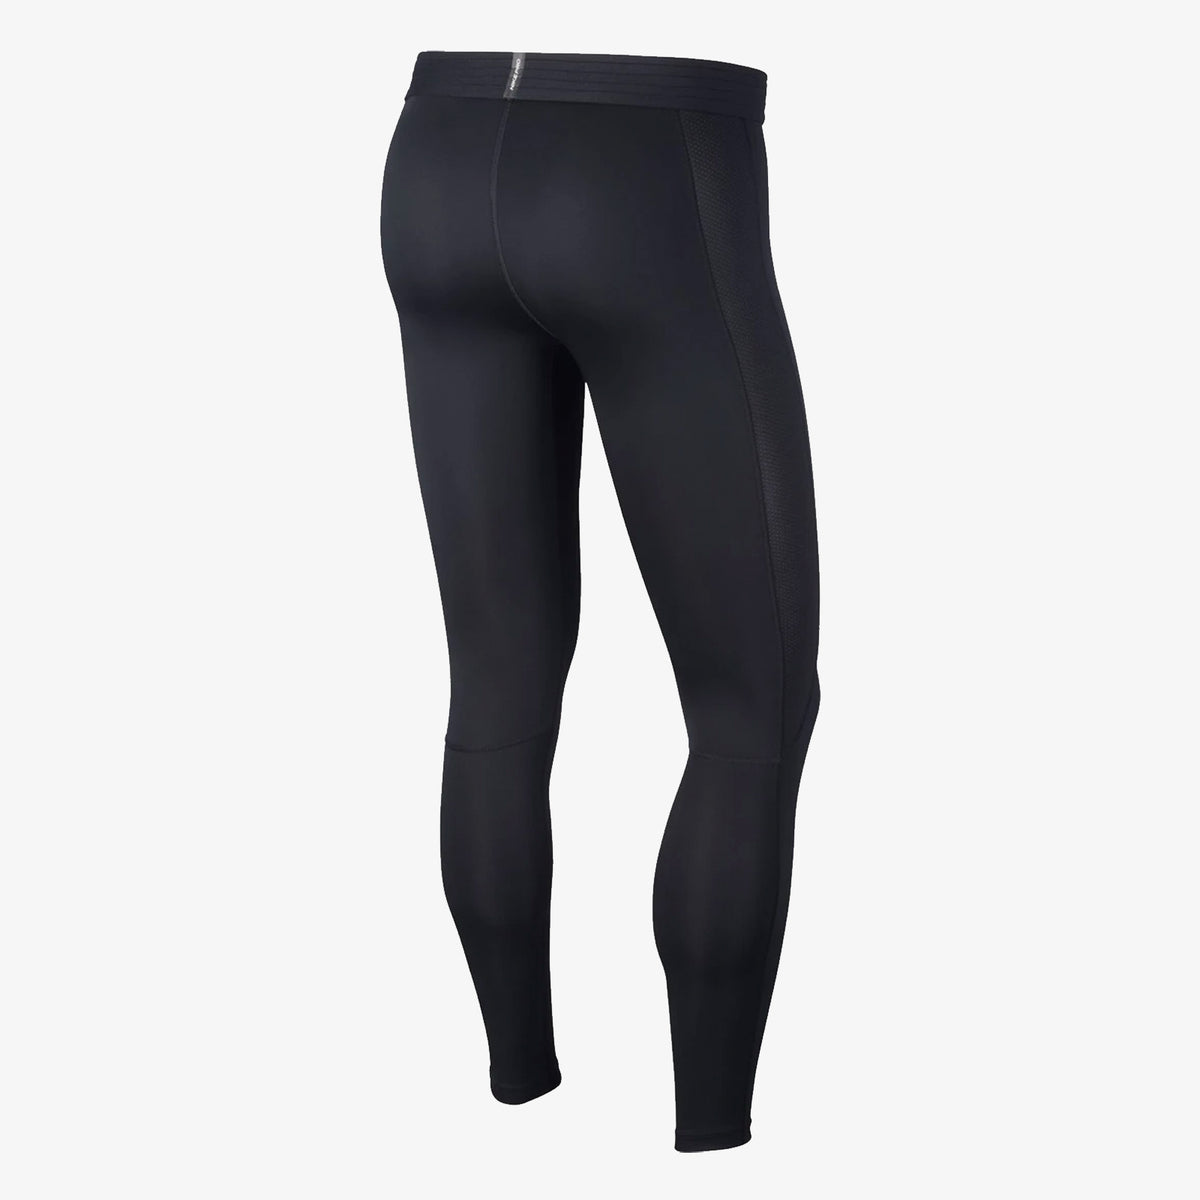 Nike Pro Men's Tights - Black/White